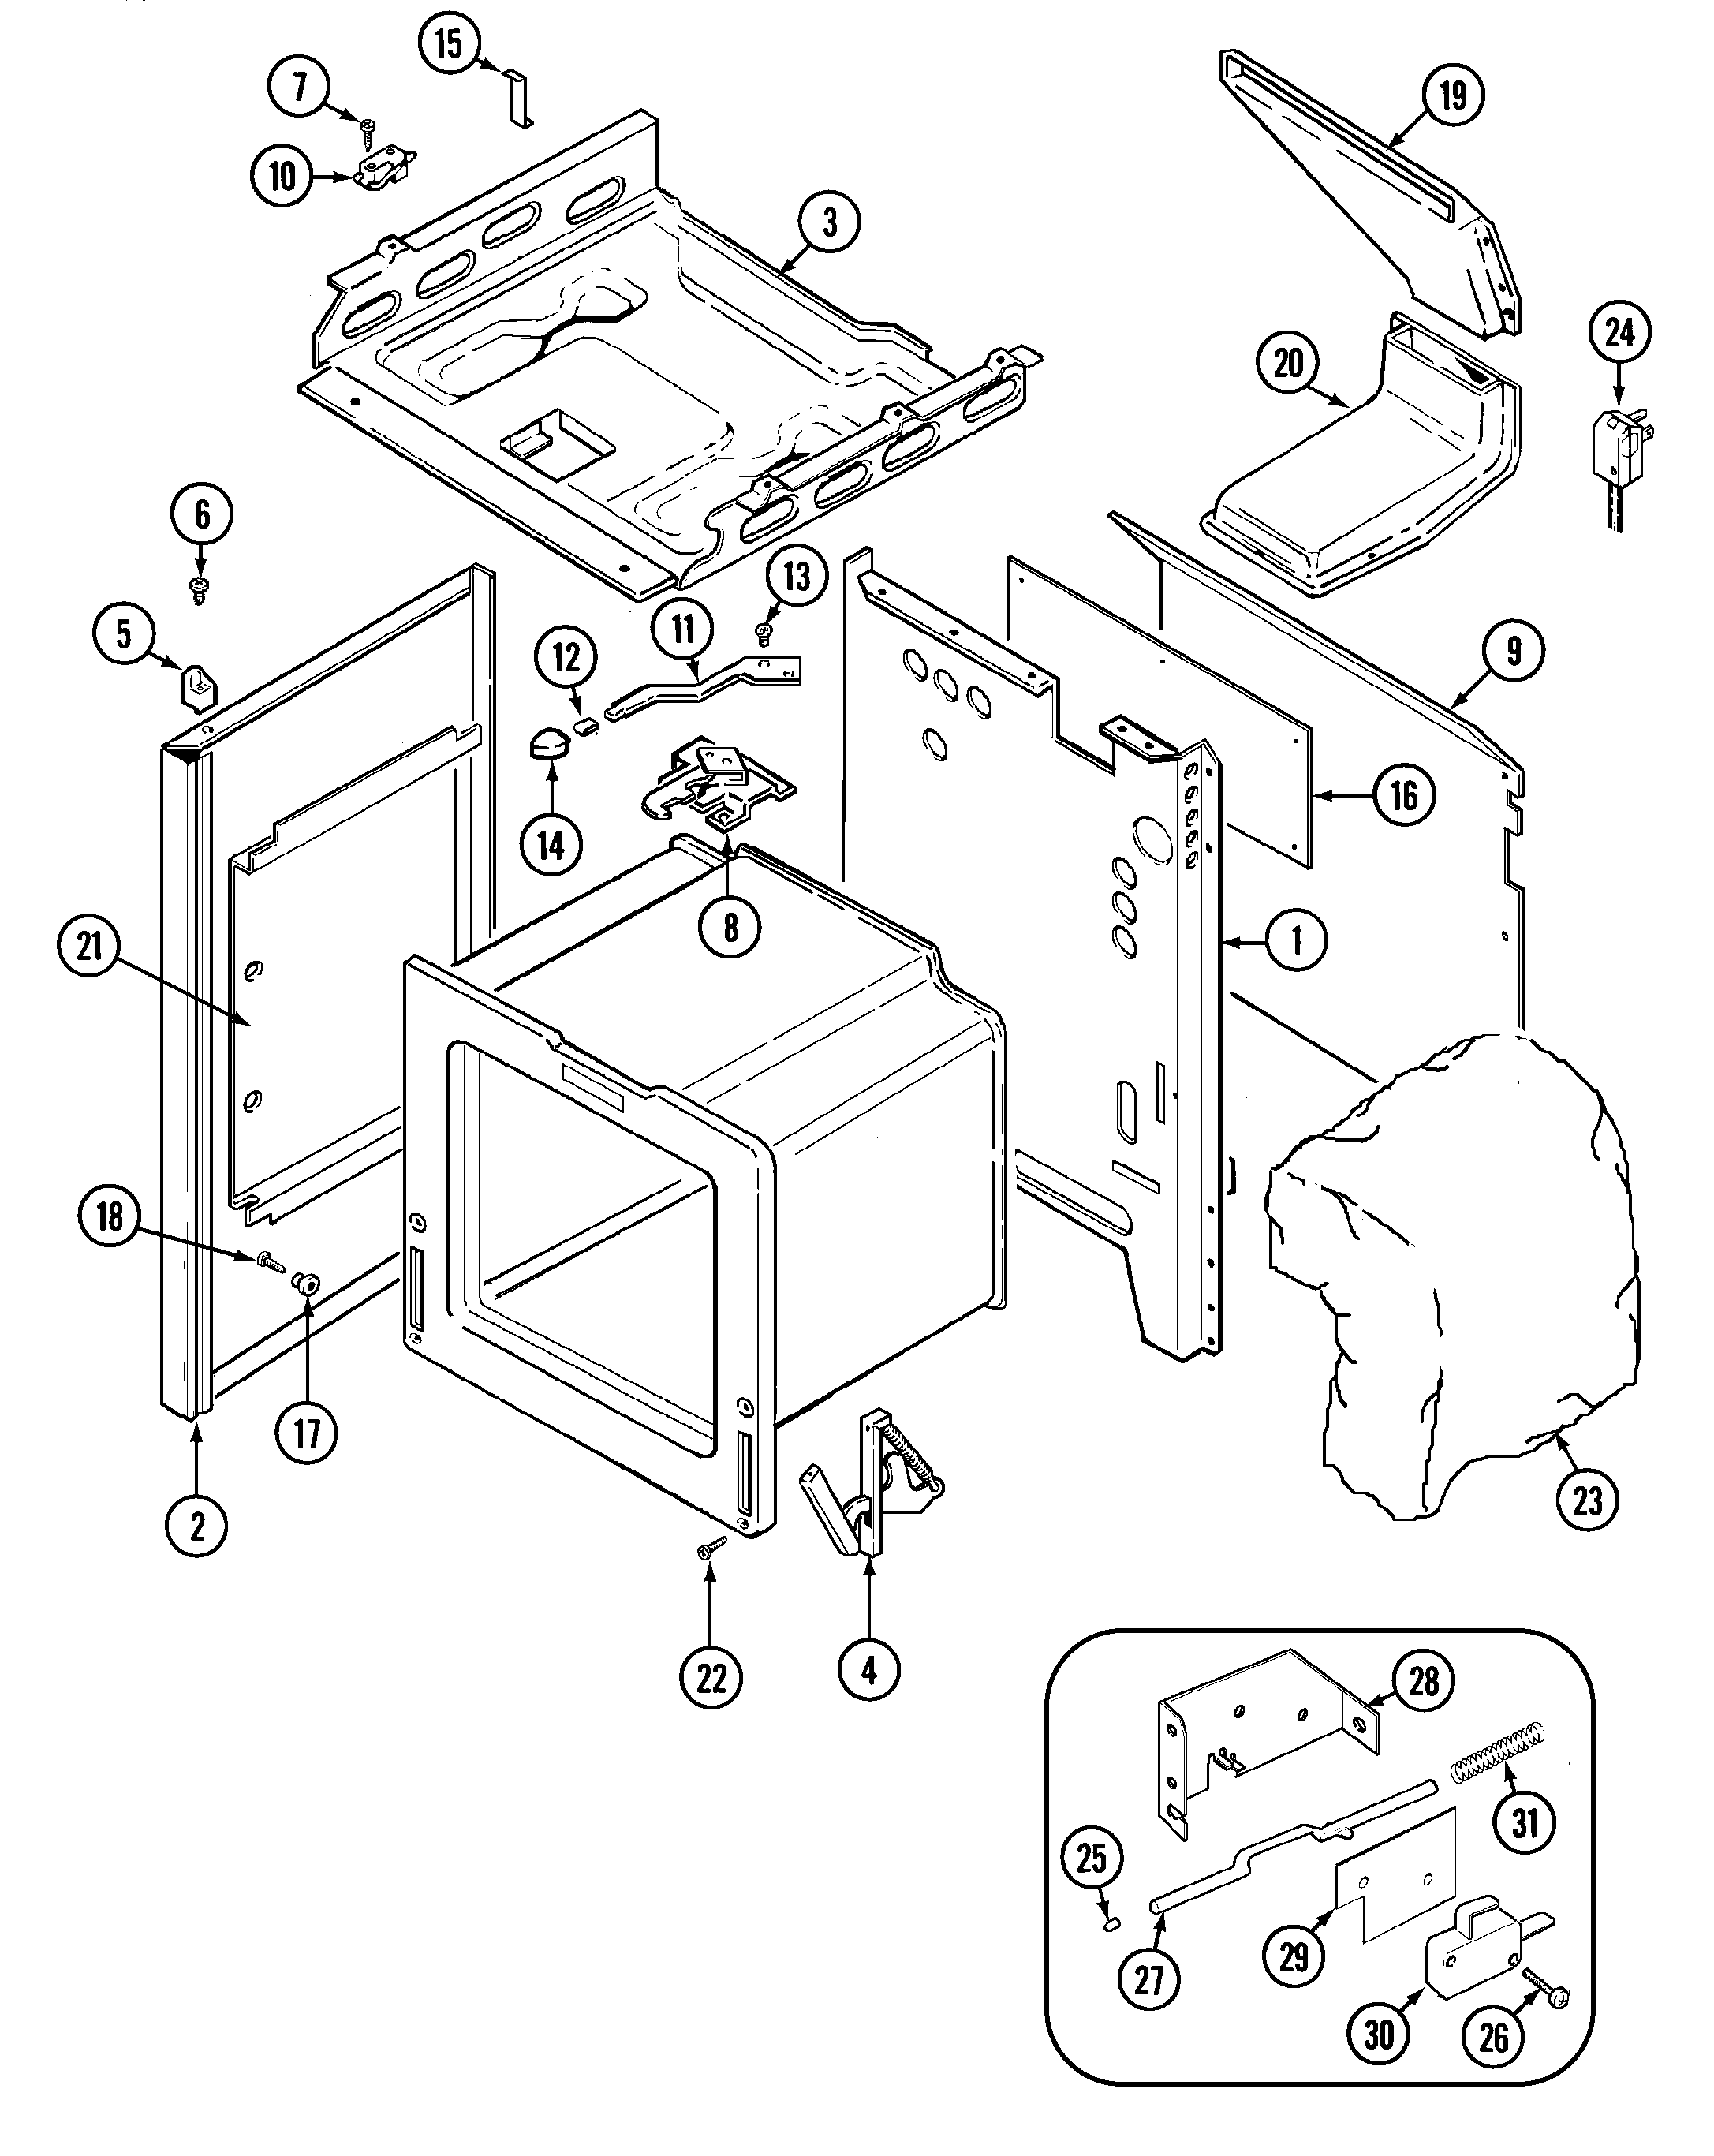 Maytag Crg9700cae Timer Stove Clocks And Appliance Timers Whirlpool Parts Schematic Range Body Diagram